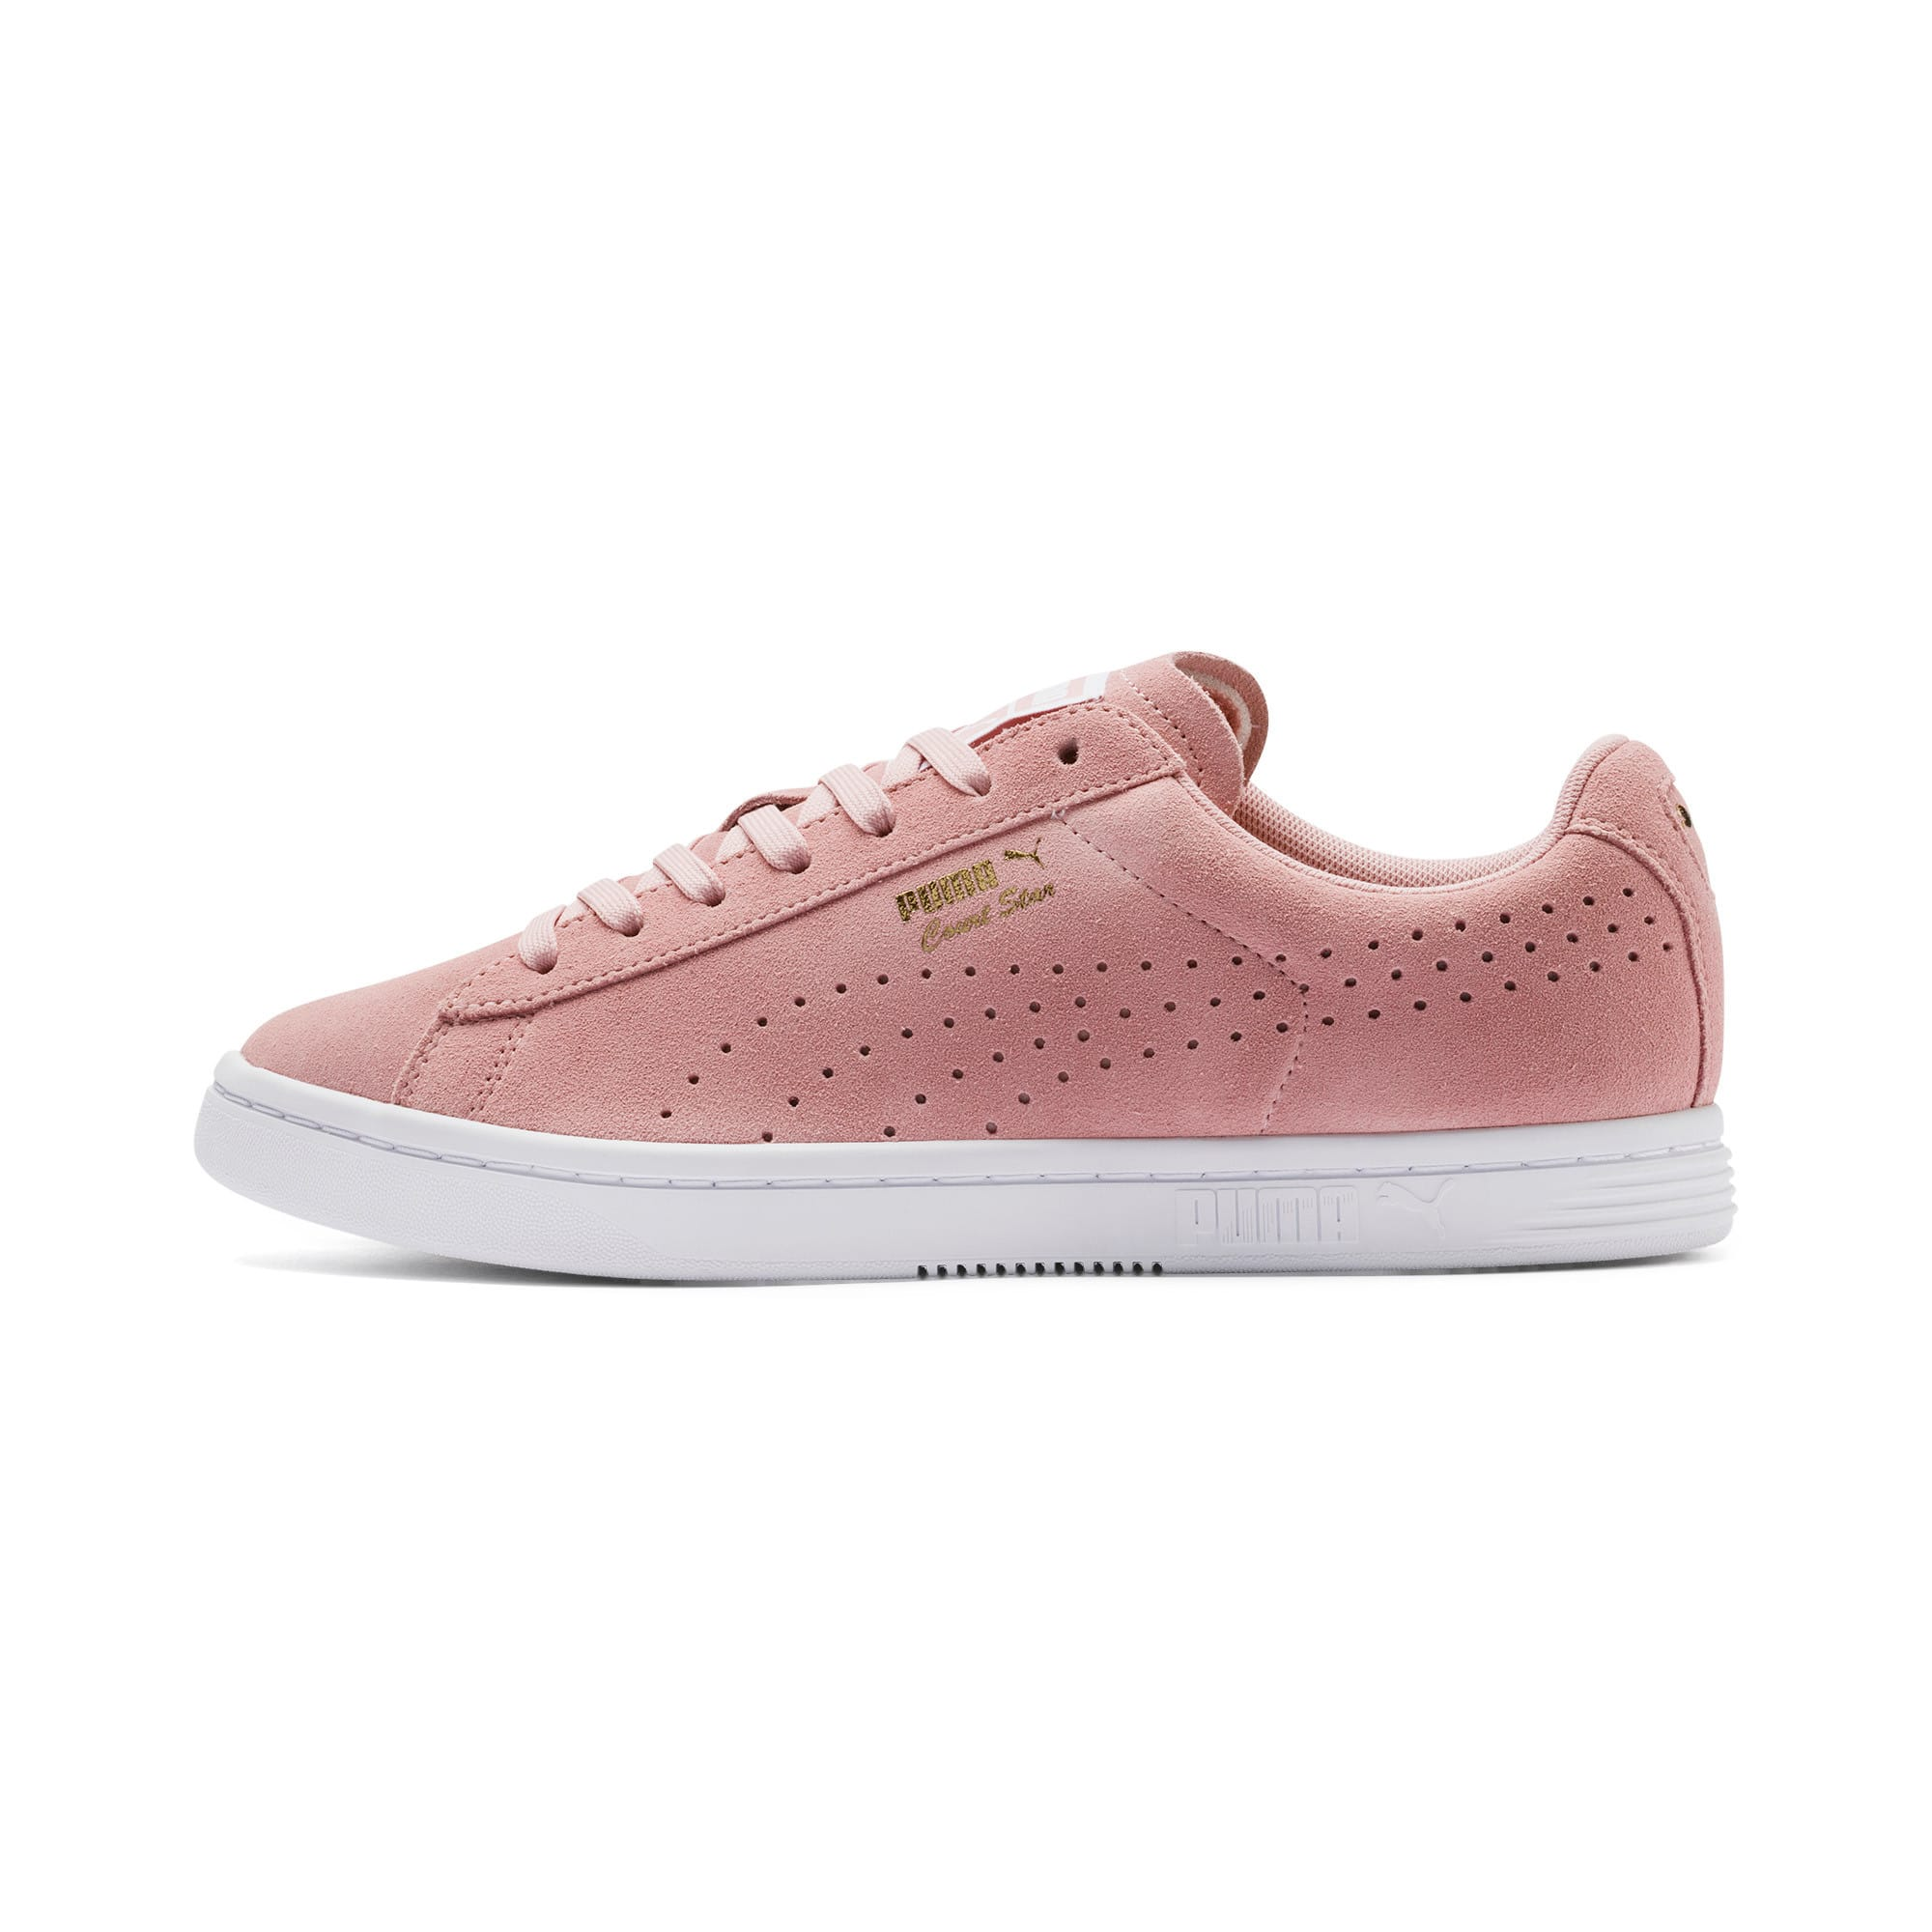 Thumbnail 1 of Court Star Suede Sneakers, Bridal Rose-Puma White, medium